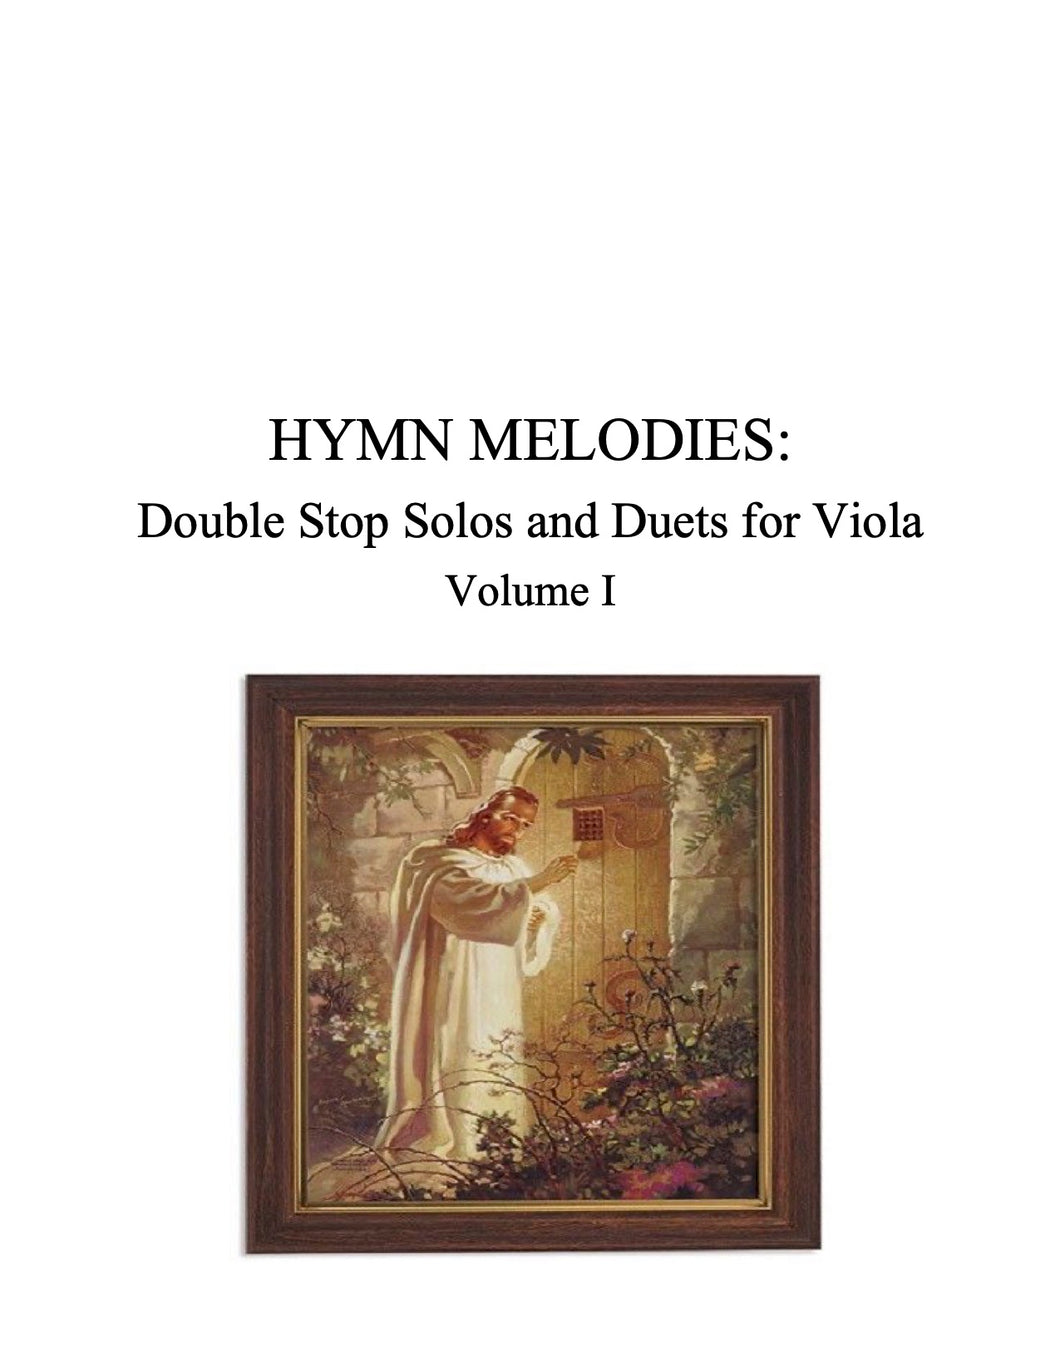 072 Hymn Melodies: Double Stop Solos and Duets For Viola Volume I